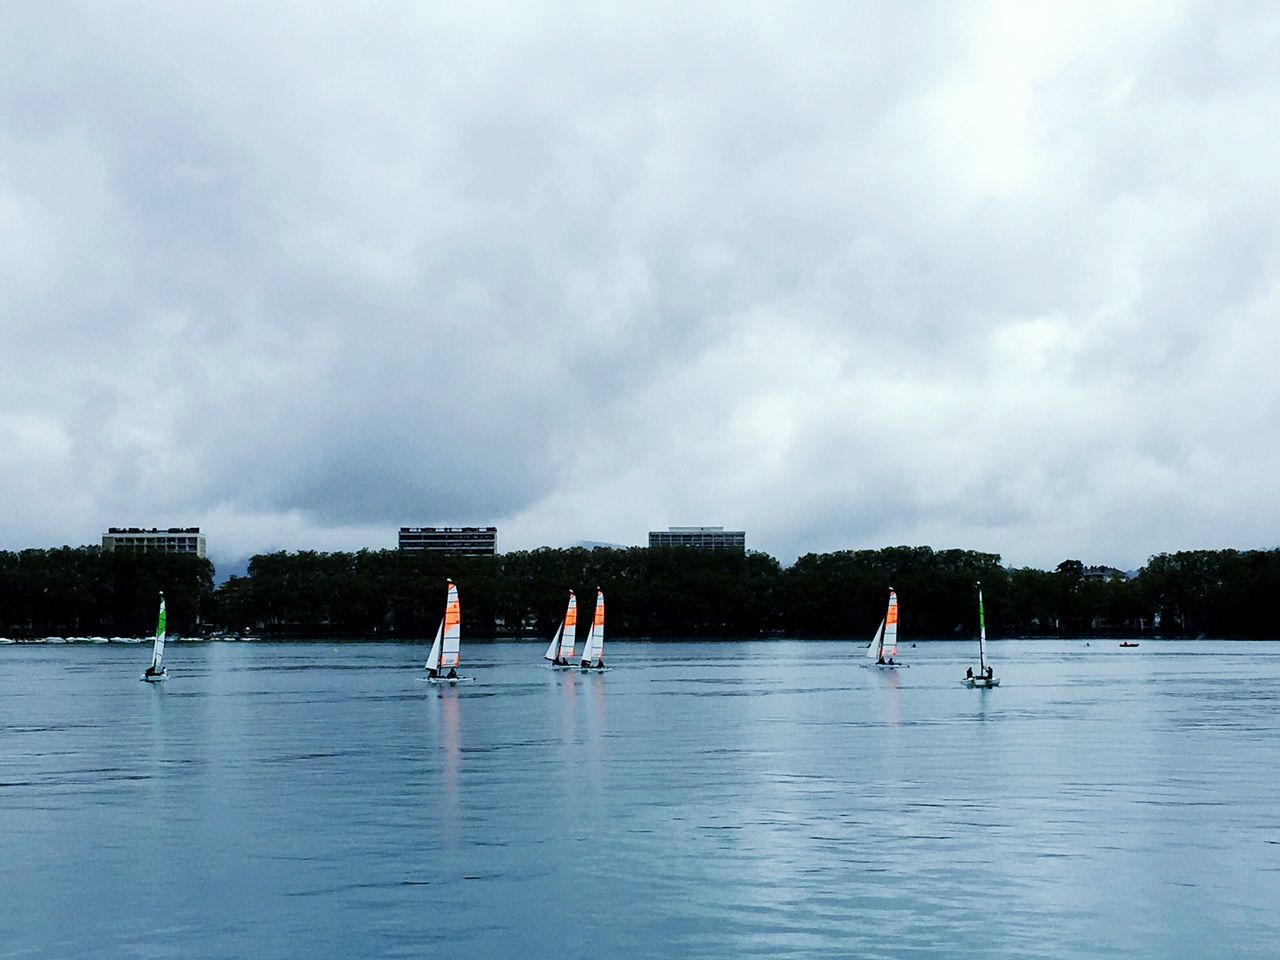 water, cloud - sky, real people, waterfront, sky, nature, sport, outdoors, day, beauty in nature, leisure activity, lifestyles, scenics, tree, sea, men, paddleboarding, people